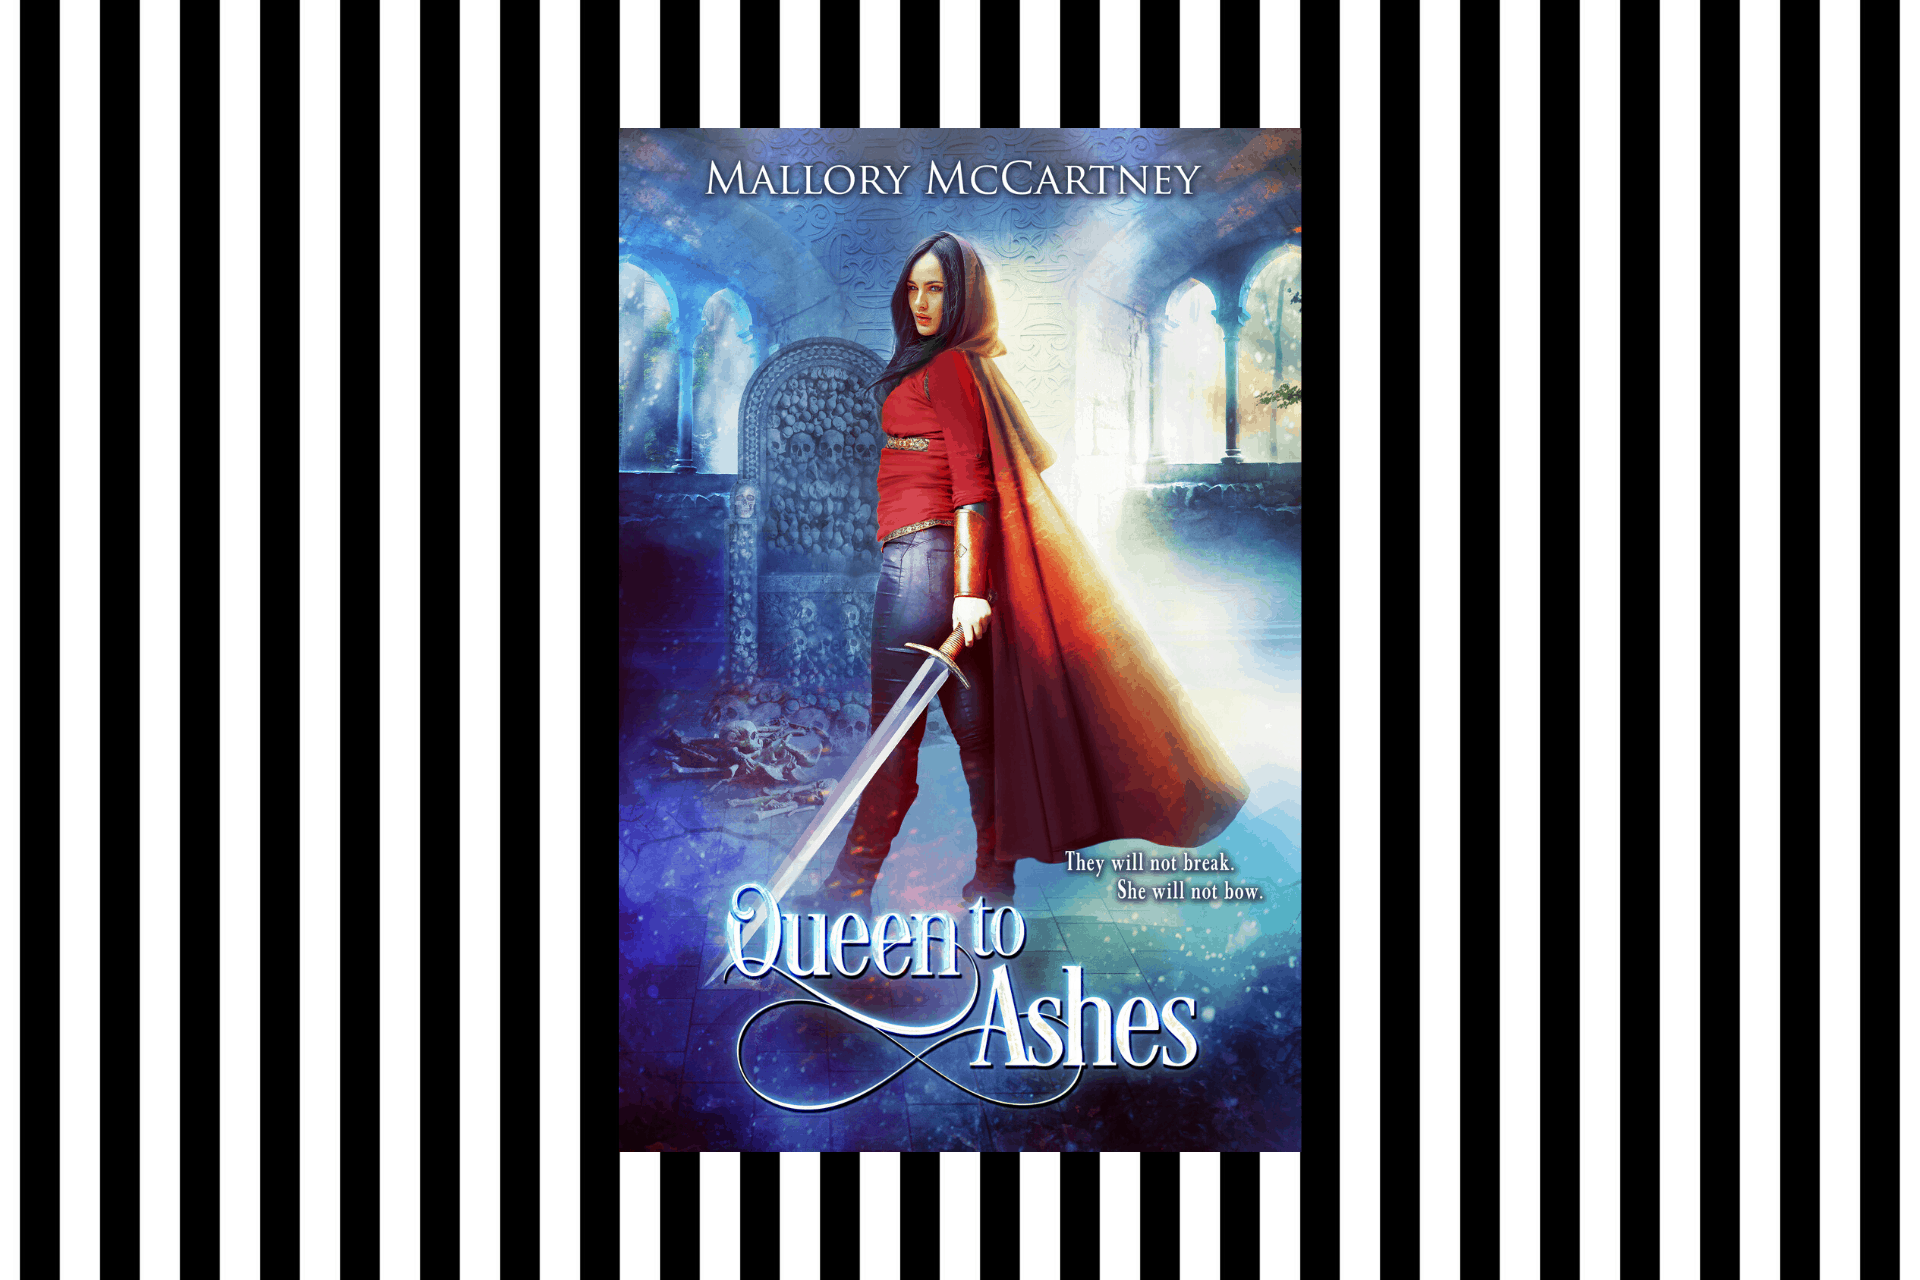 The cover of Queen to Ashes by Mallory McCartney